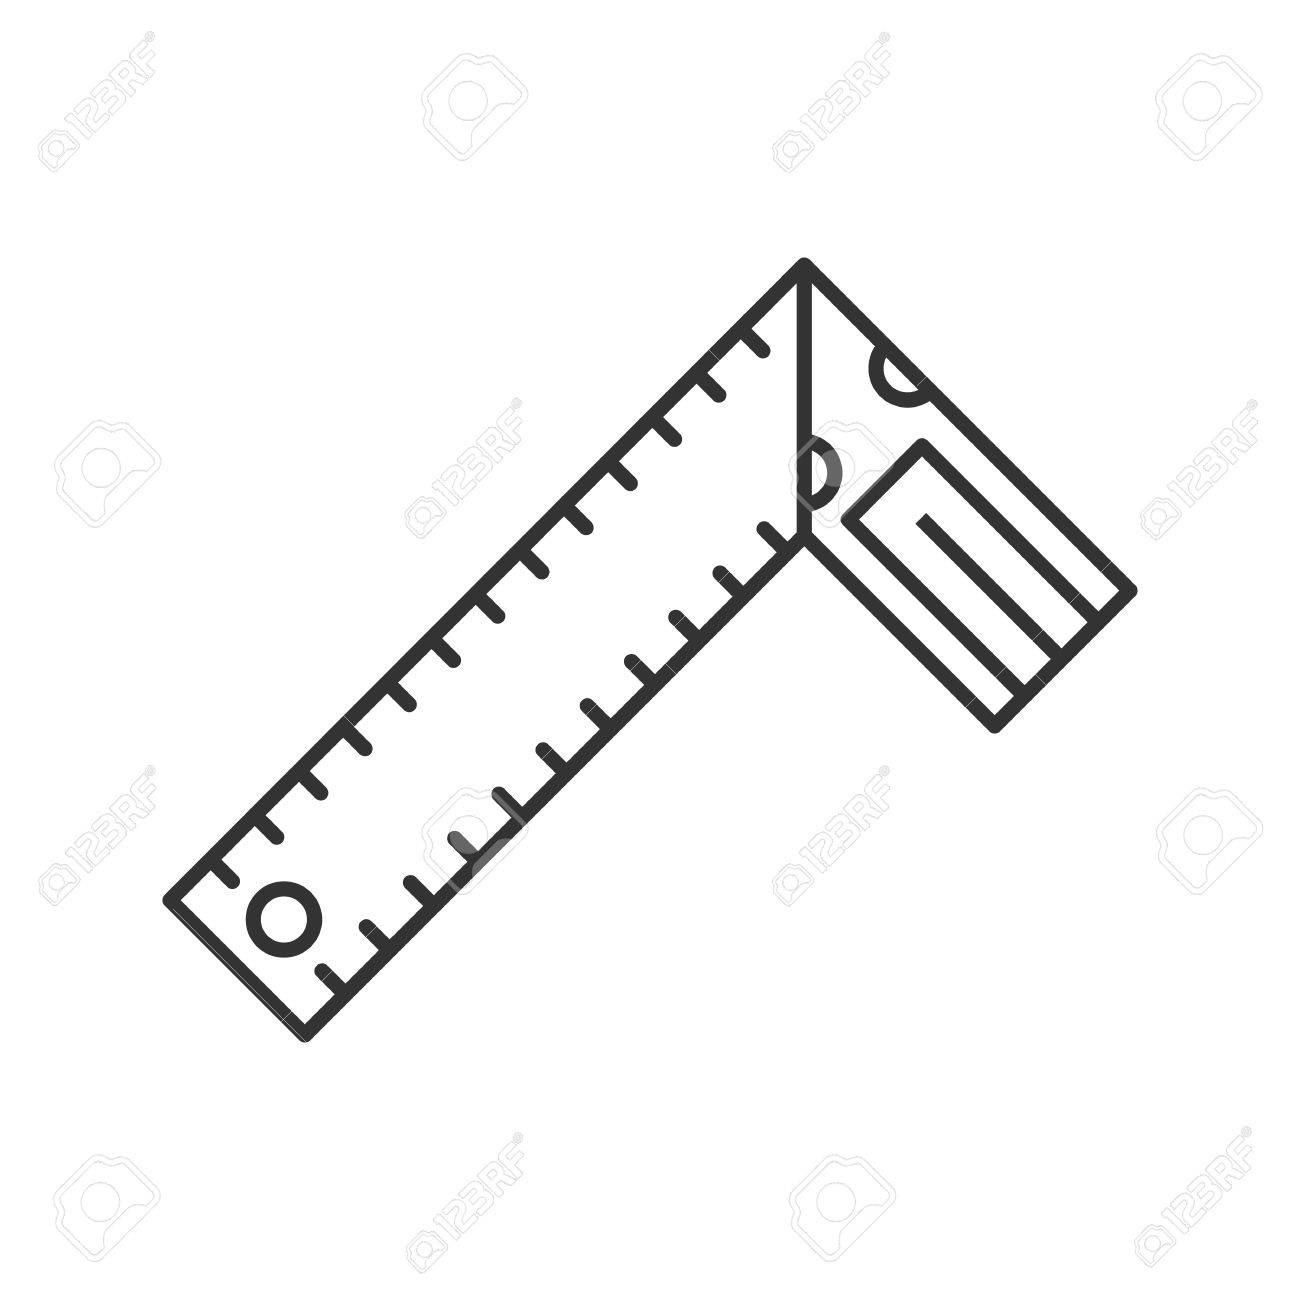 Set square linear icon construction tool thin line illustration set square linear icon construction tool thin line illustration bevel square contour symbol biocorpaavc